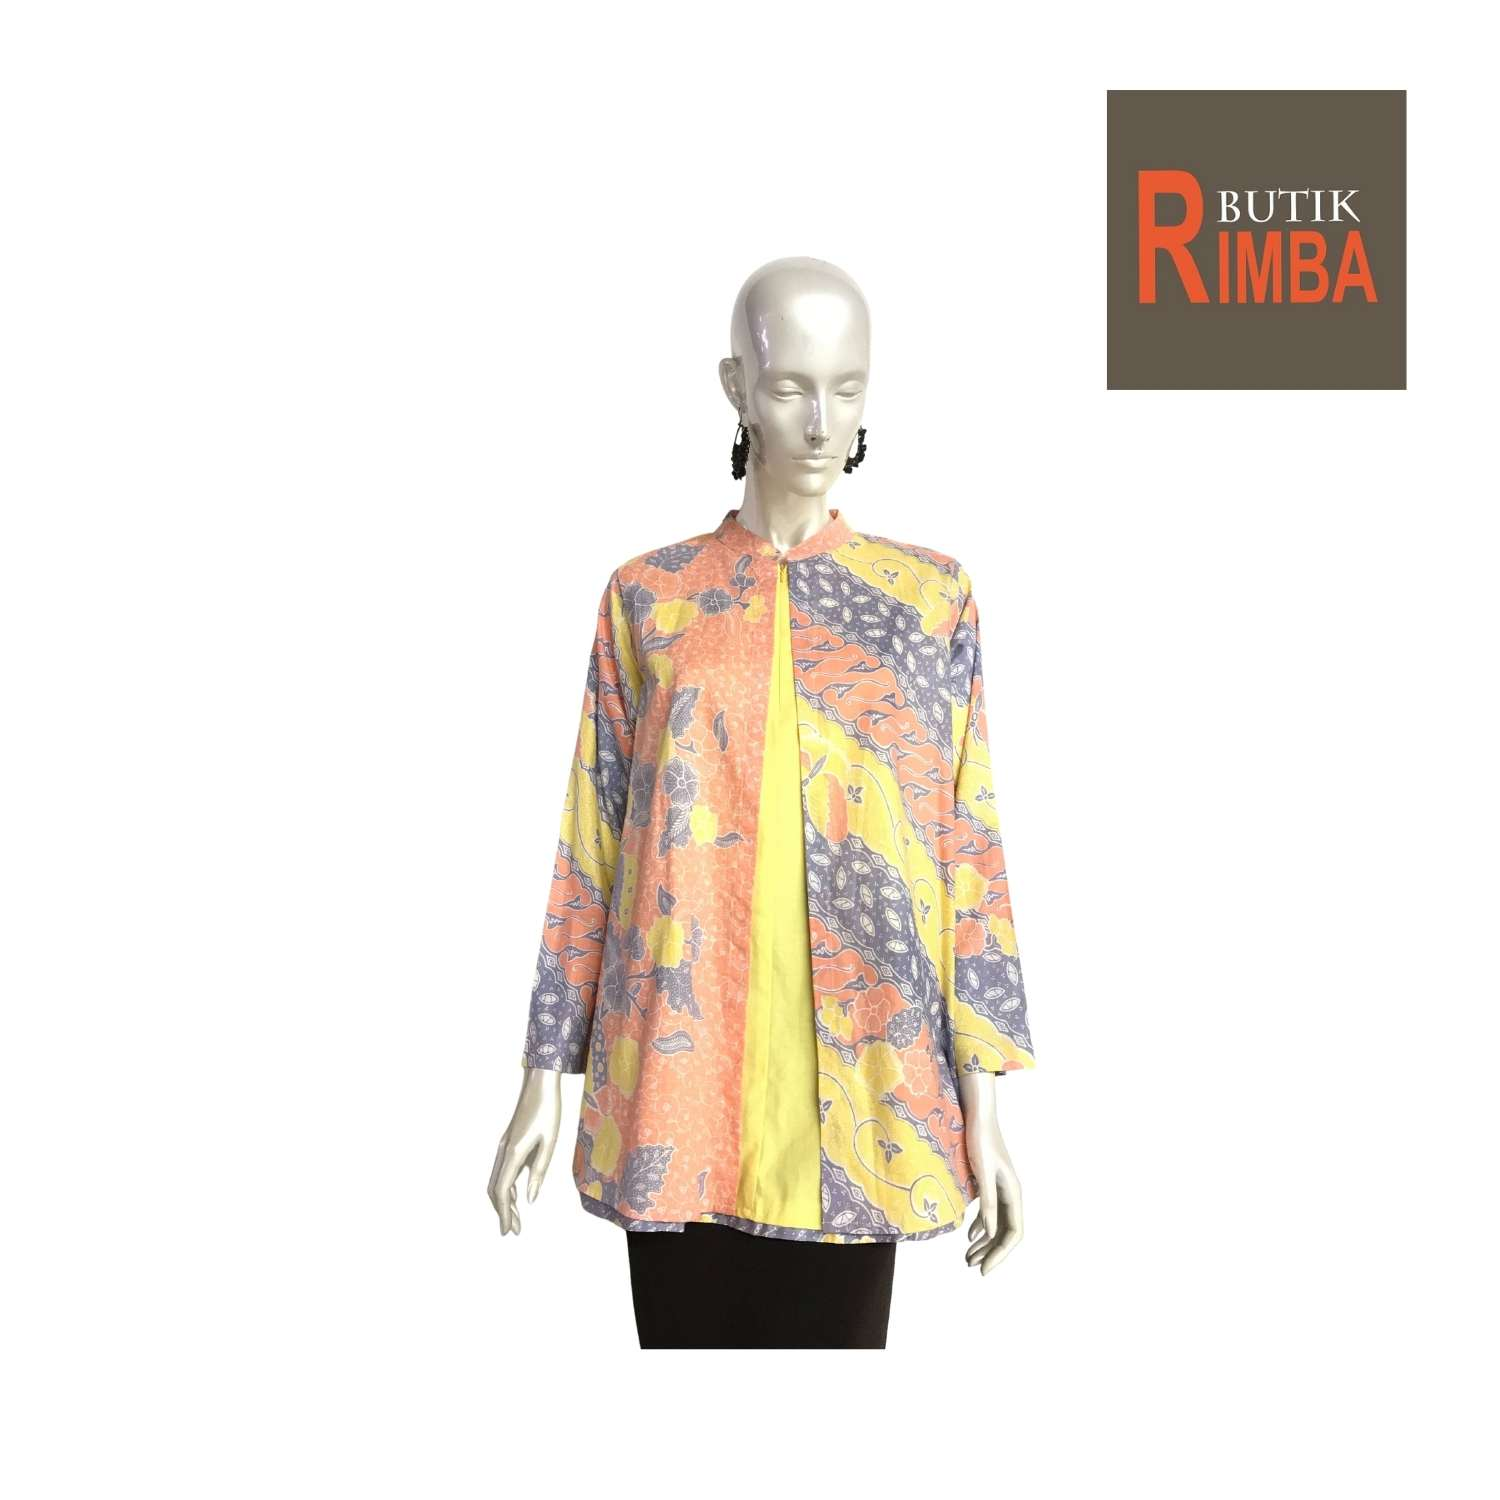 PLUS SIZE BATIK TOP LONG SLEEVE FOR WOMEN WITH VIBRANT COLORS, EXCLUSIVE DESIGNS TRENDY AND COMFY